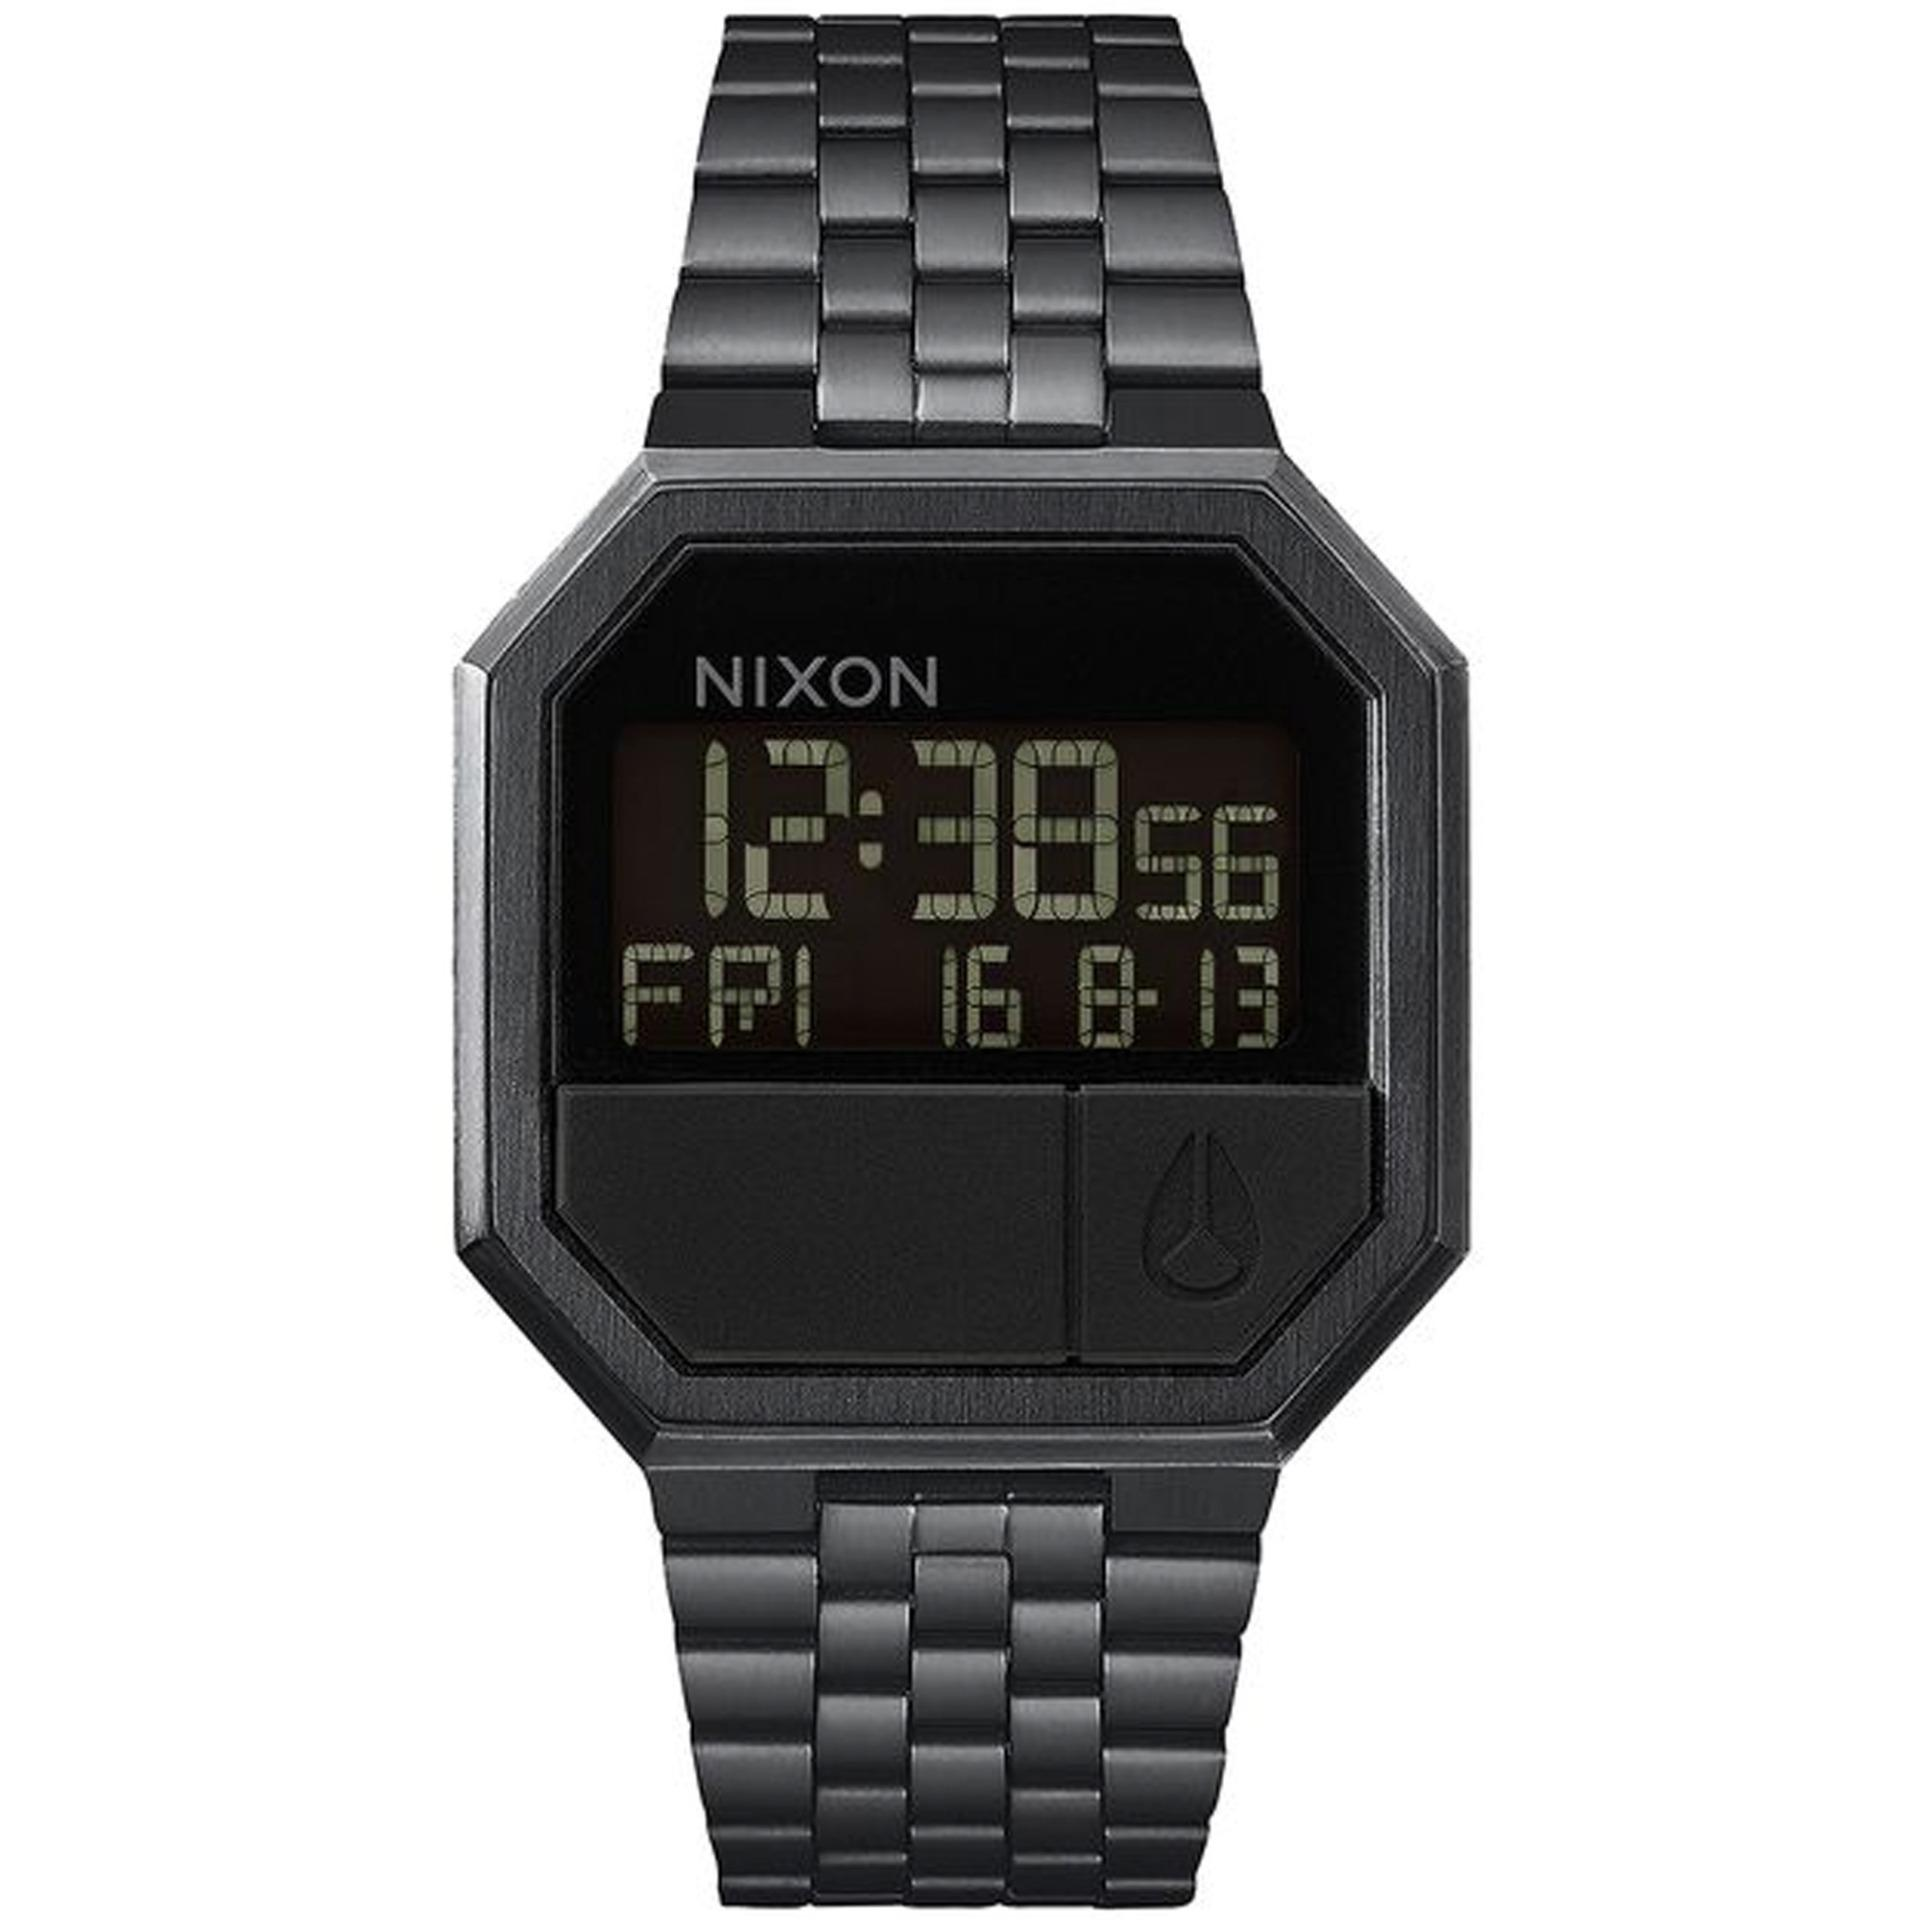 nixon re run mens black stainless steel watch a158001 lazada nixon re run mens black stainless steel watch a158001 lazada singapore